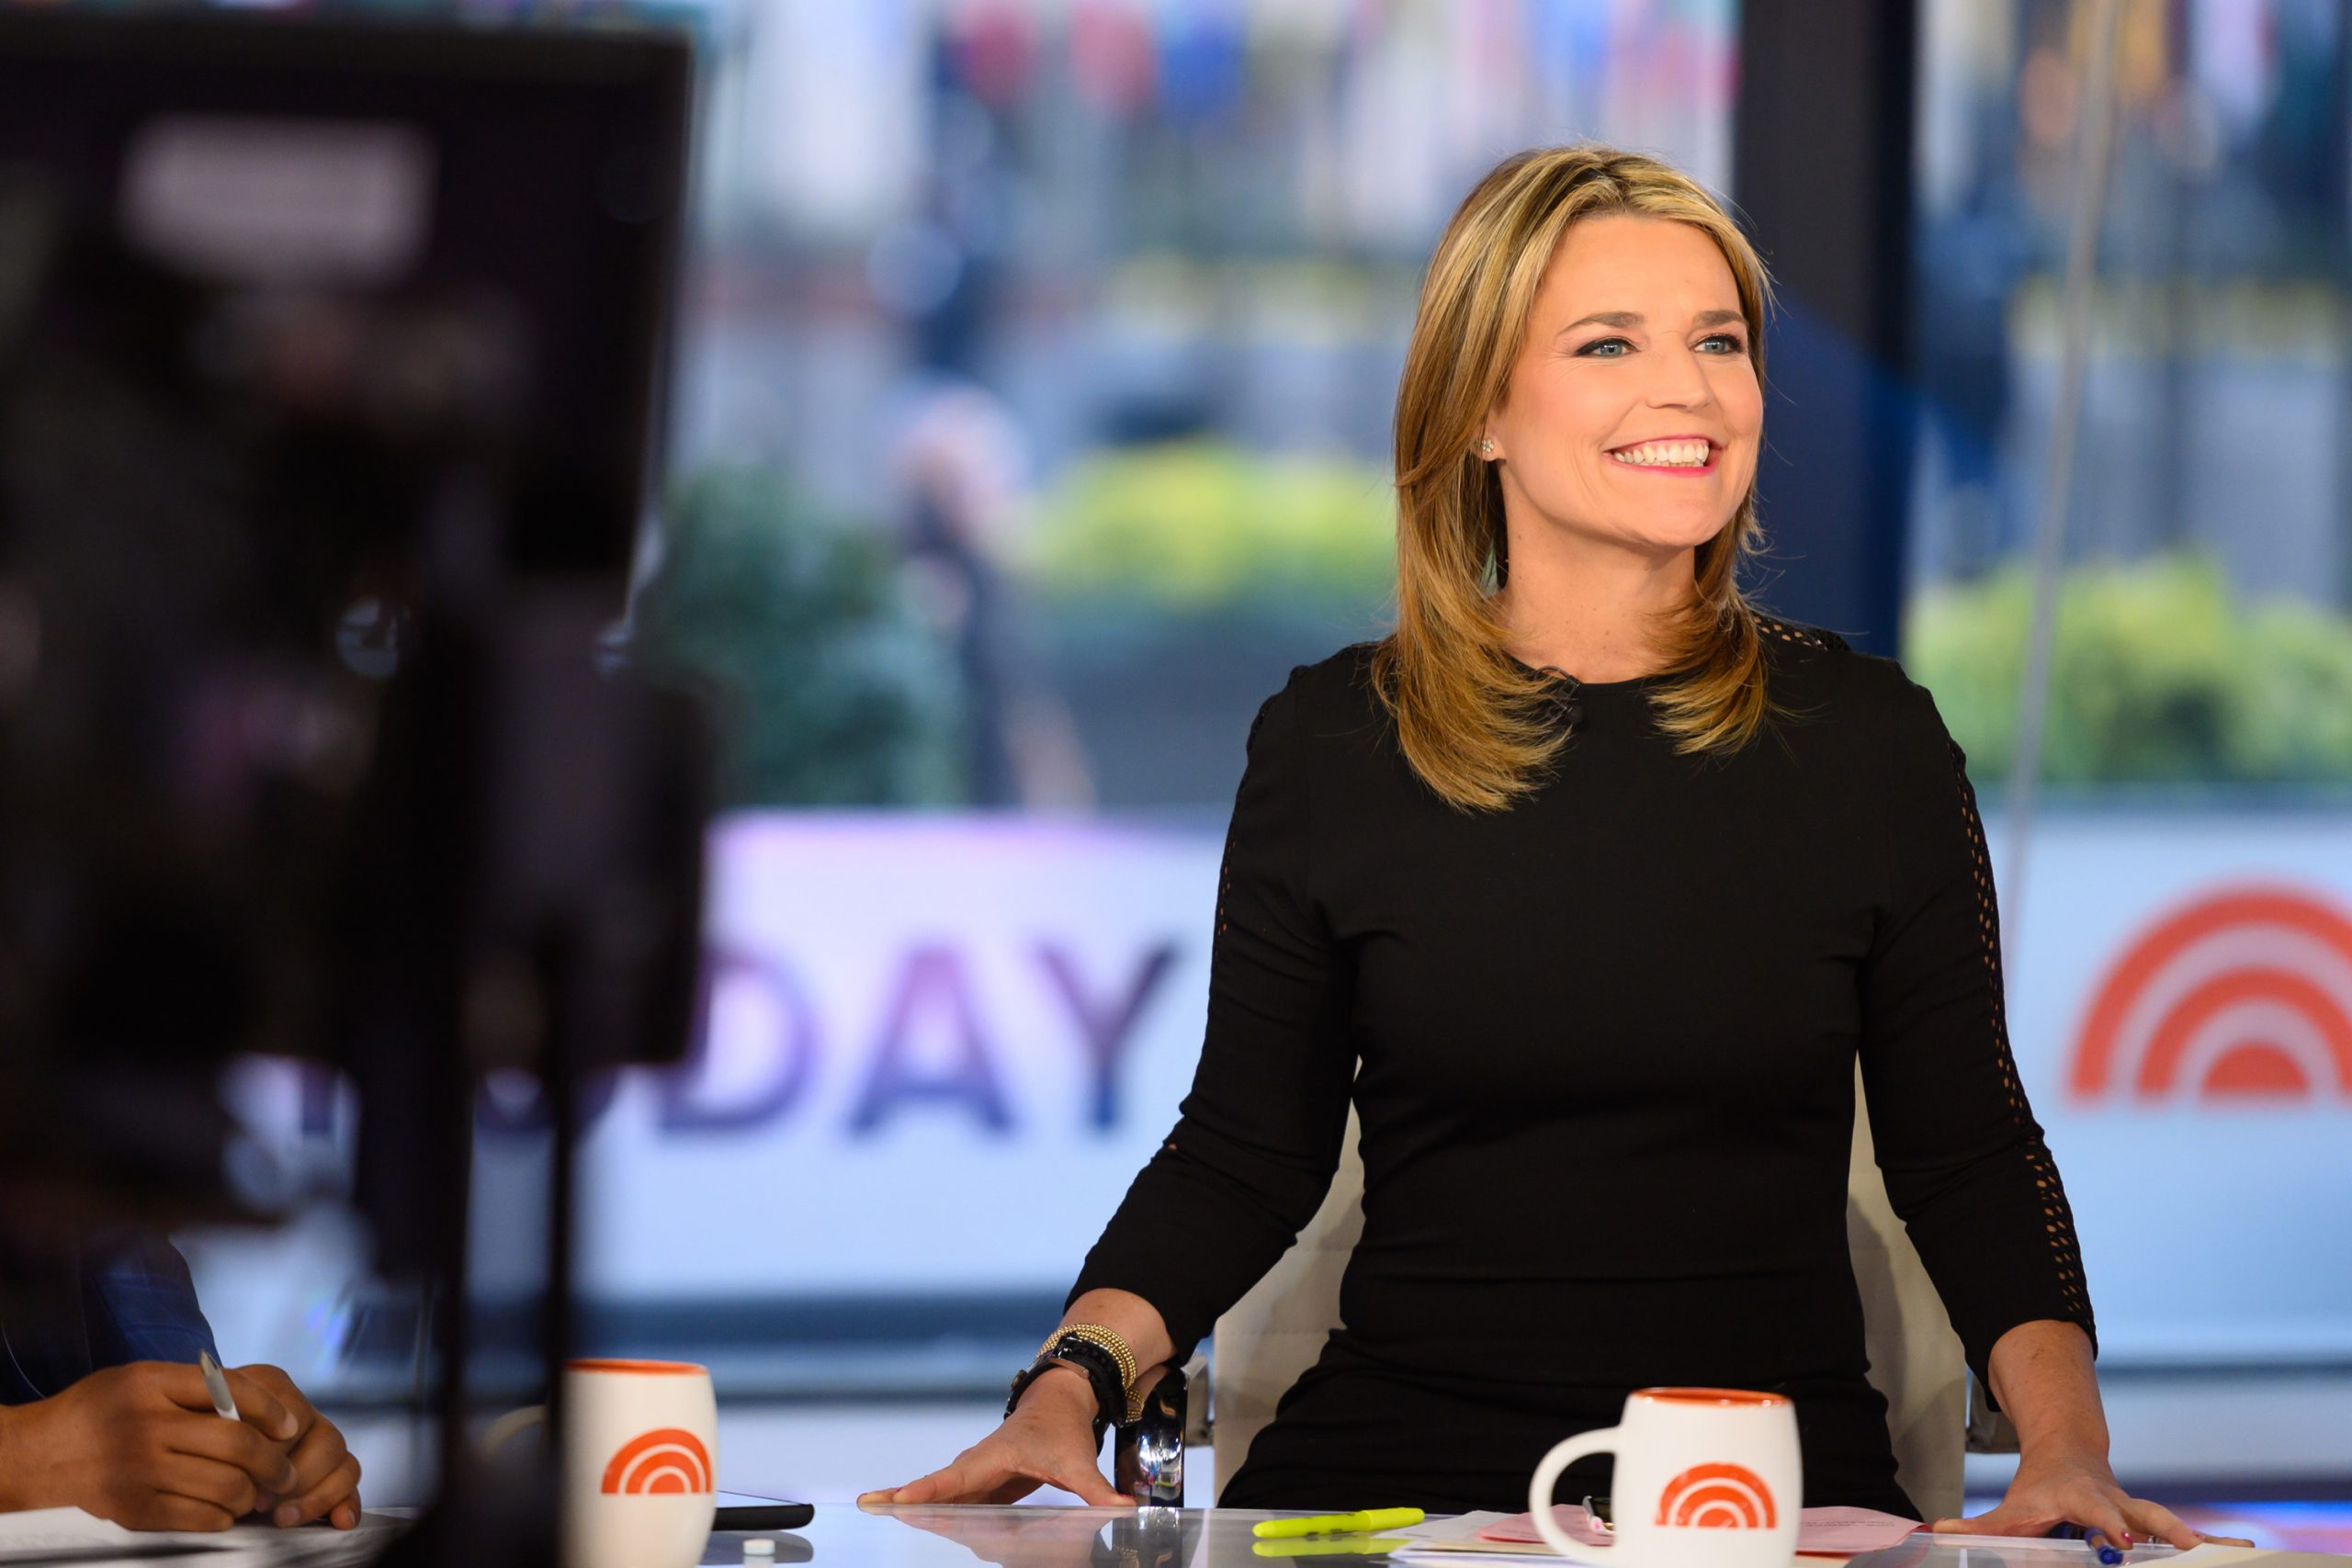 Morning show co-host Savannah Guthrie smiles as she sits at her anchor chair on the set of 'Today' in a long-sleeved black dress.